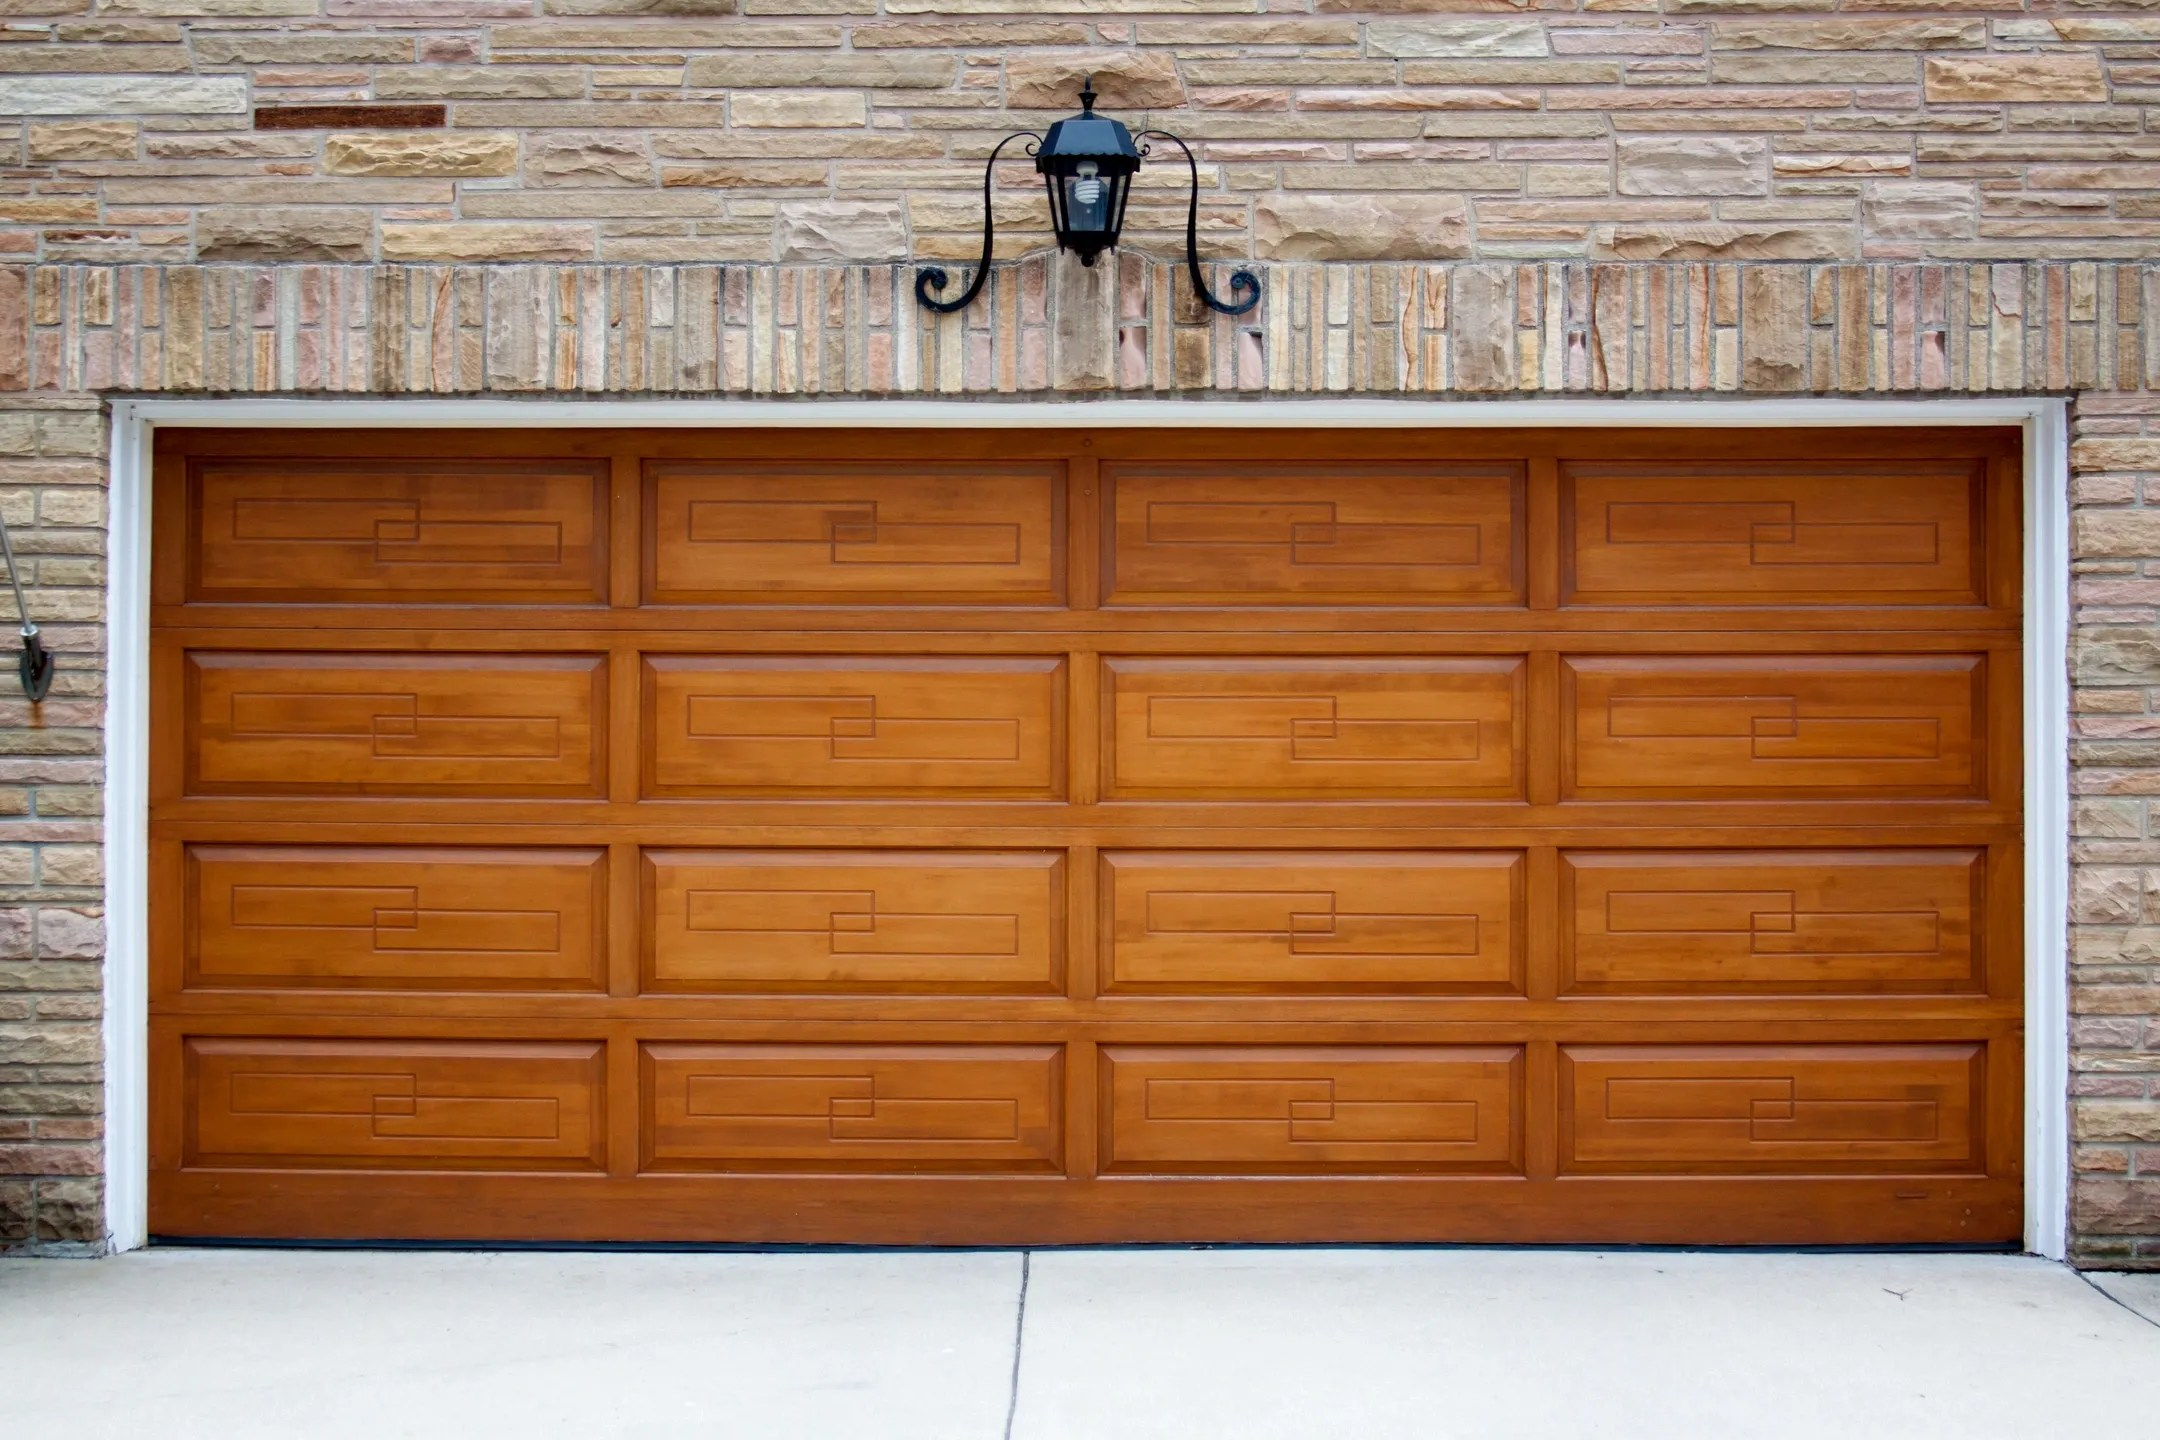 Garage Door Repair Queen Creek Az Affordable Garage Door Service